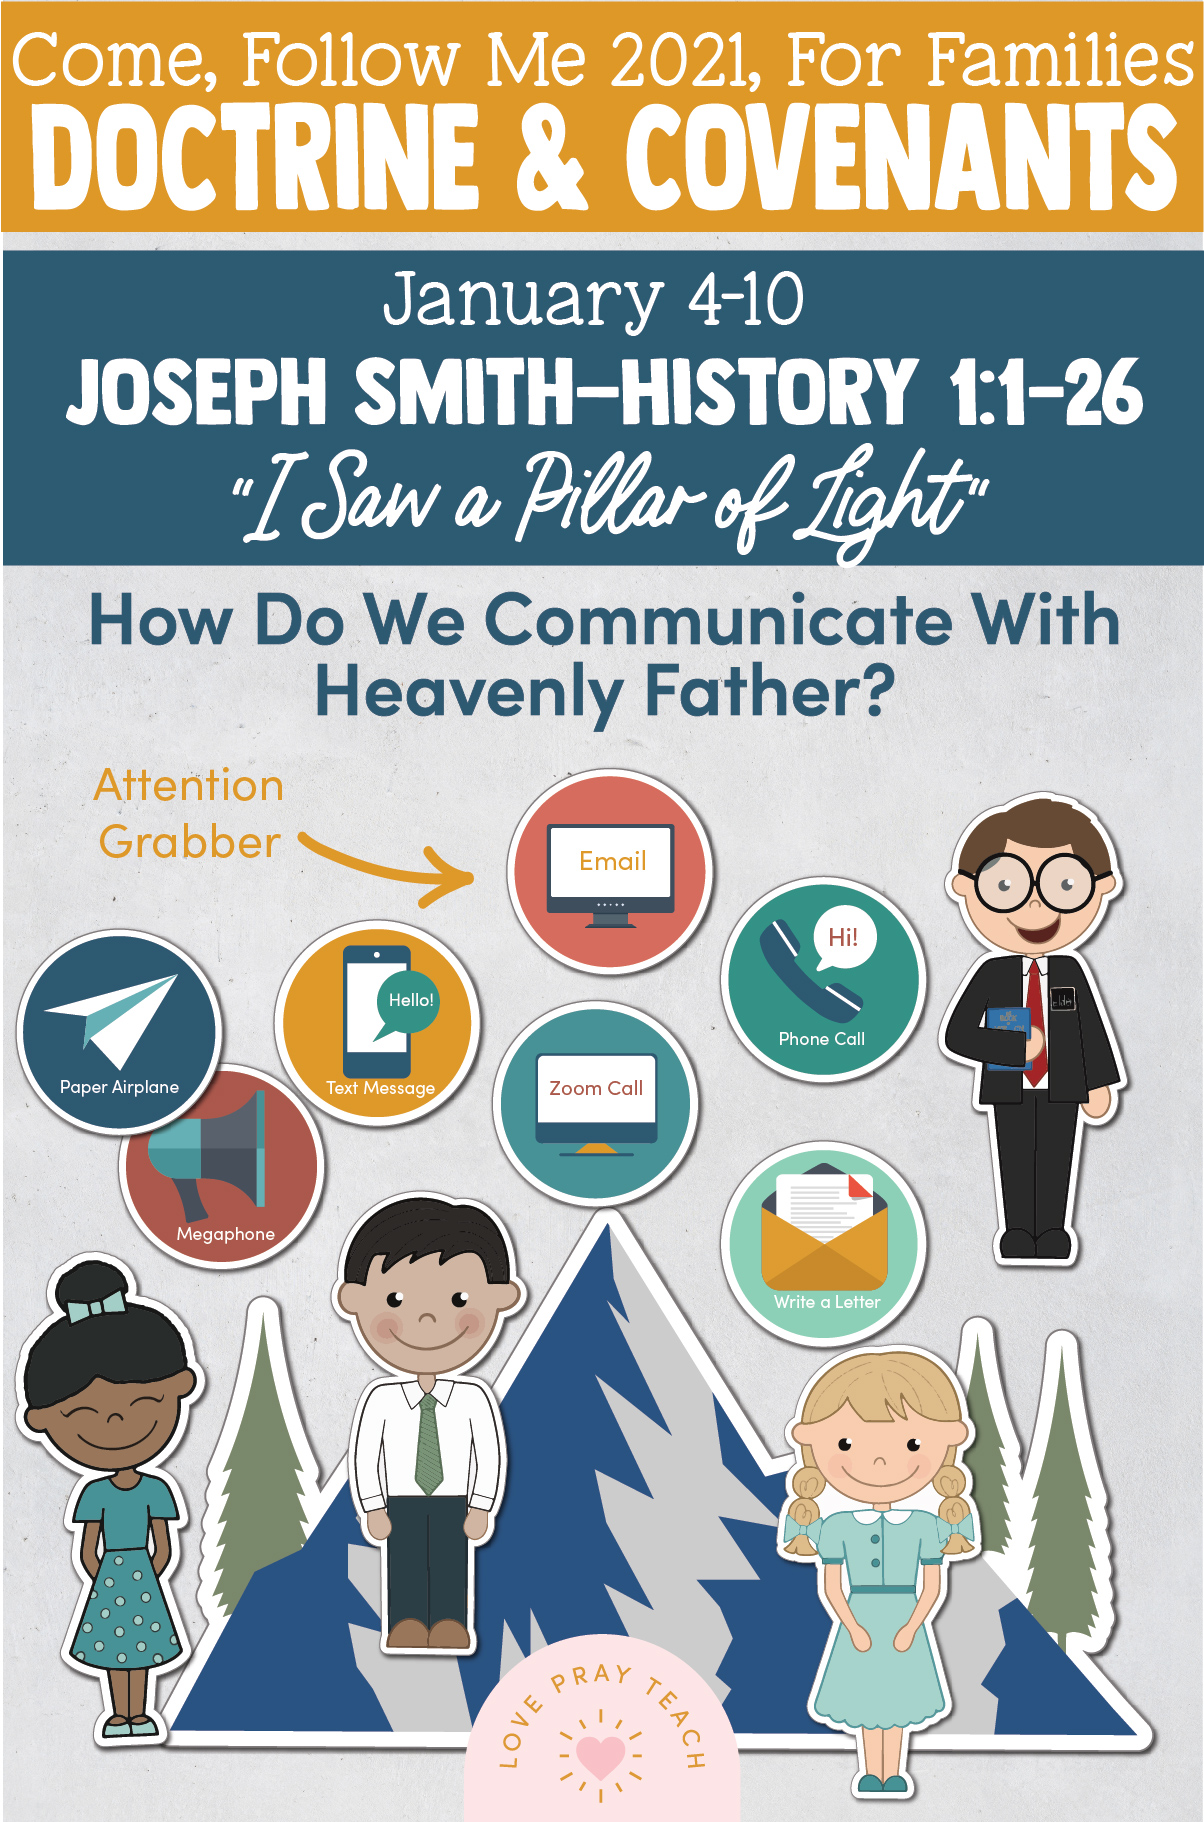 """Come, Follow Me—For Individuals and Families: Doctrine And Covenants 2021, January Week 2: January 4-10, Joseph Smith—History 1:1–26 """"I Saw a Pillar of Light"""""""